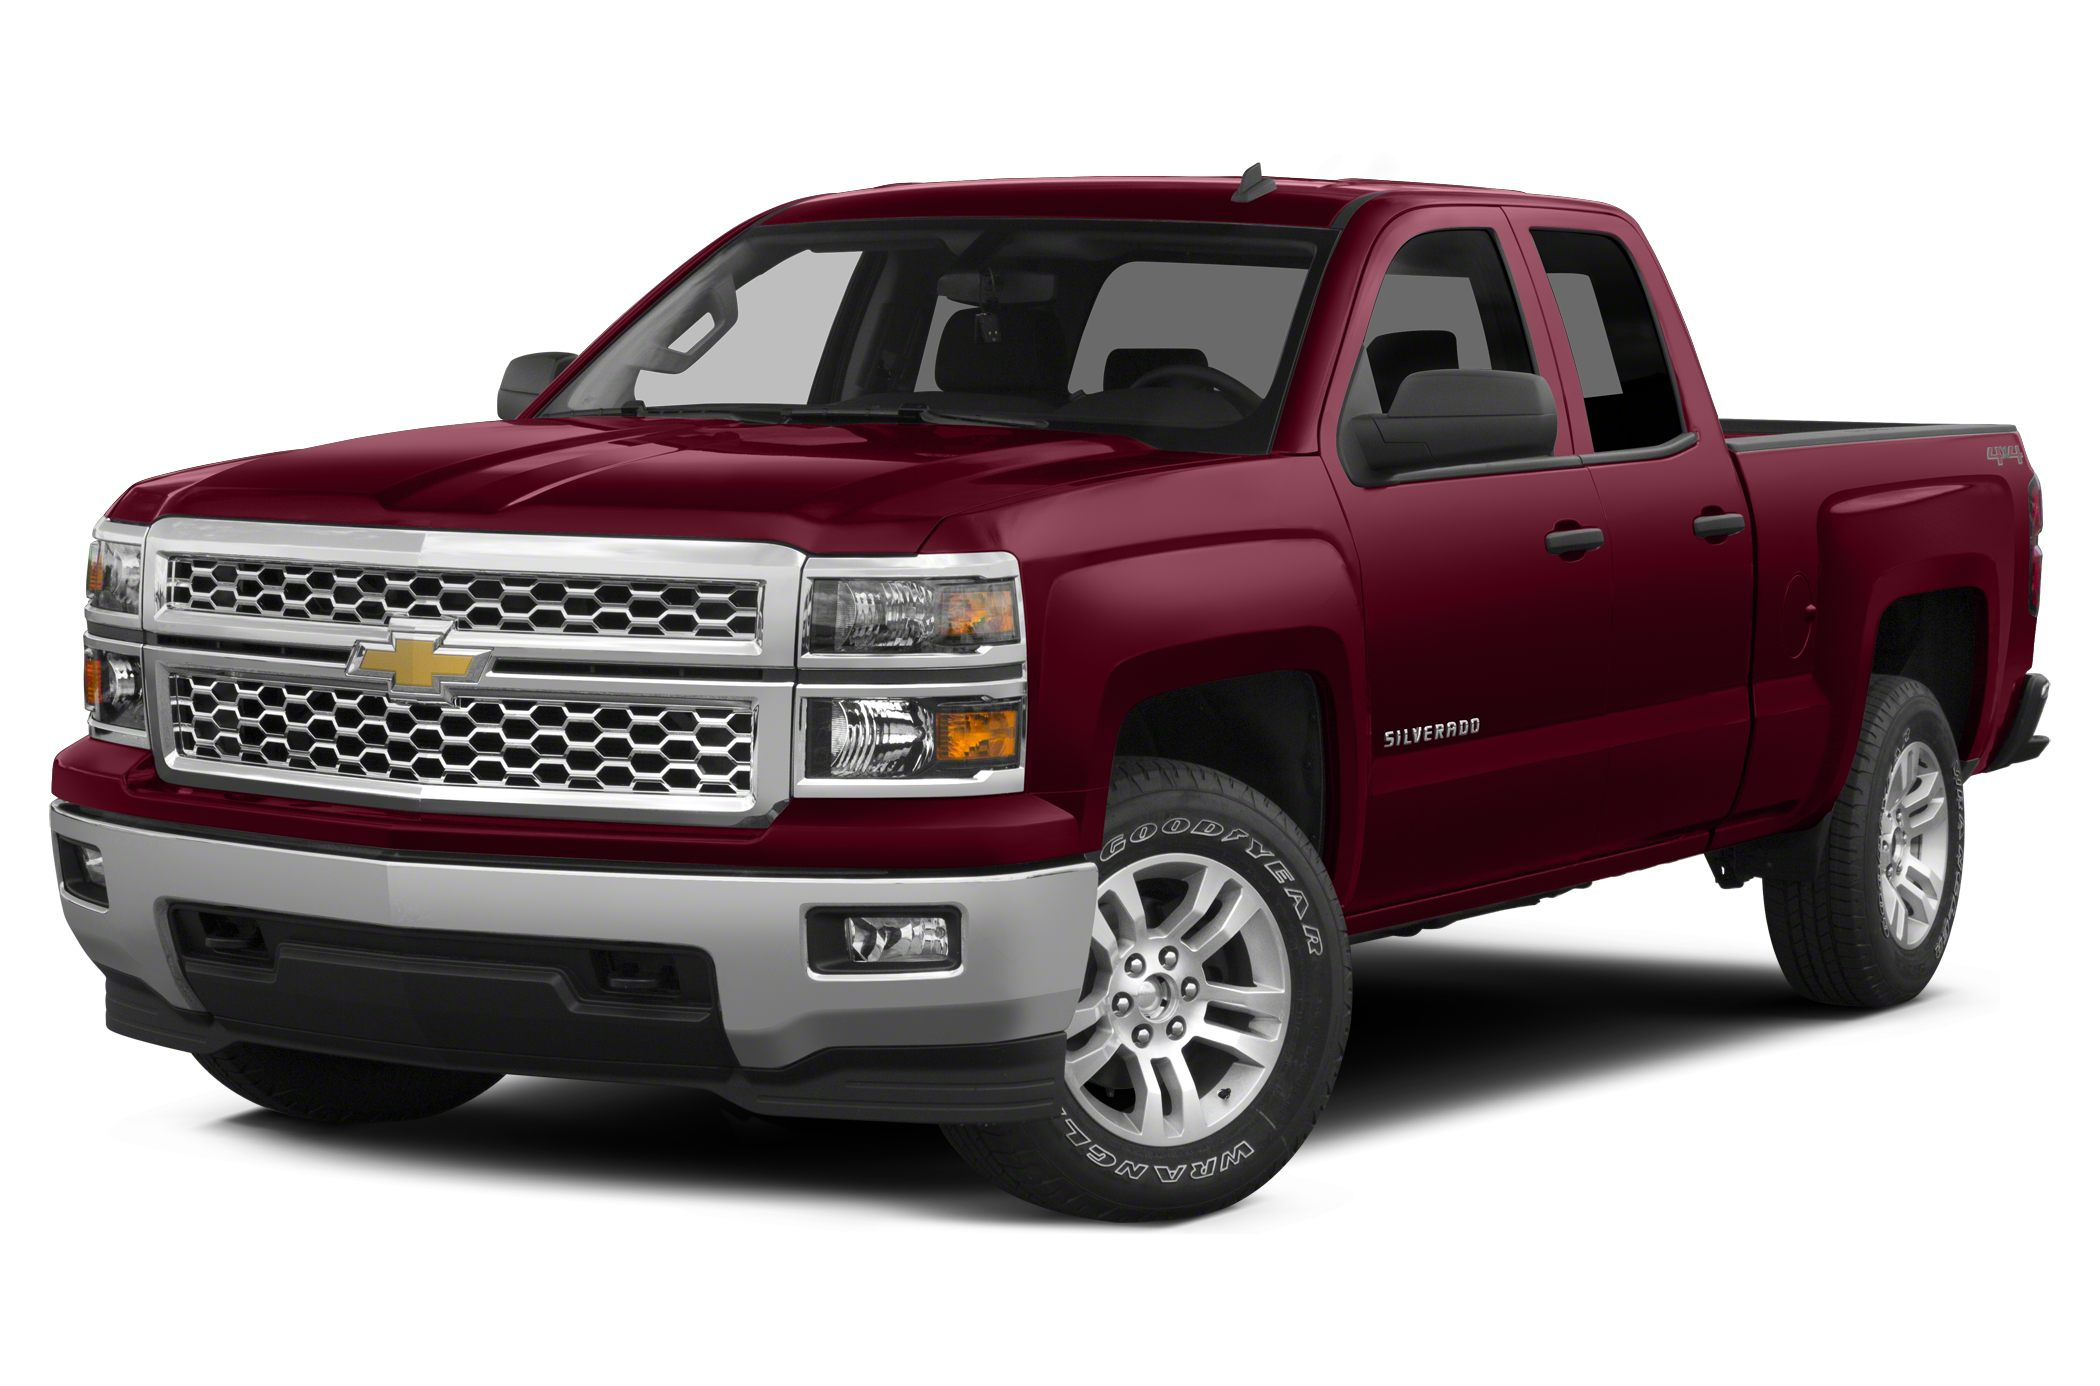 2014 Chevrolet Silverado 1500 LT ONE OWNER Chevrolet 1500 Silverado LT dealer maintained and i